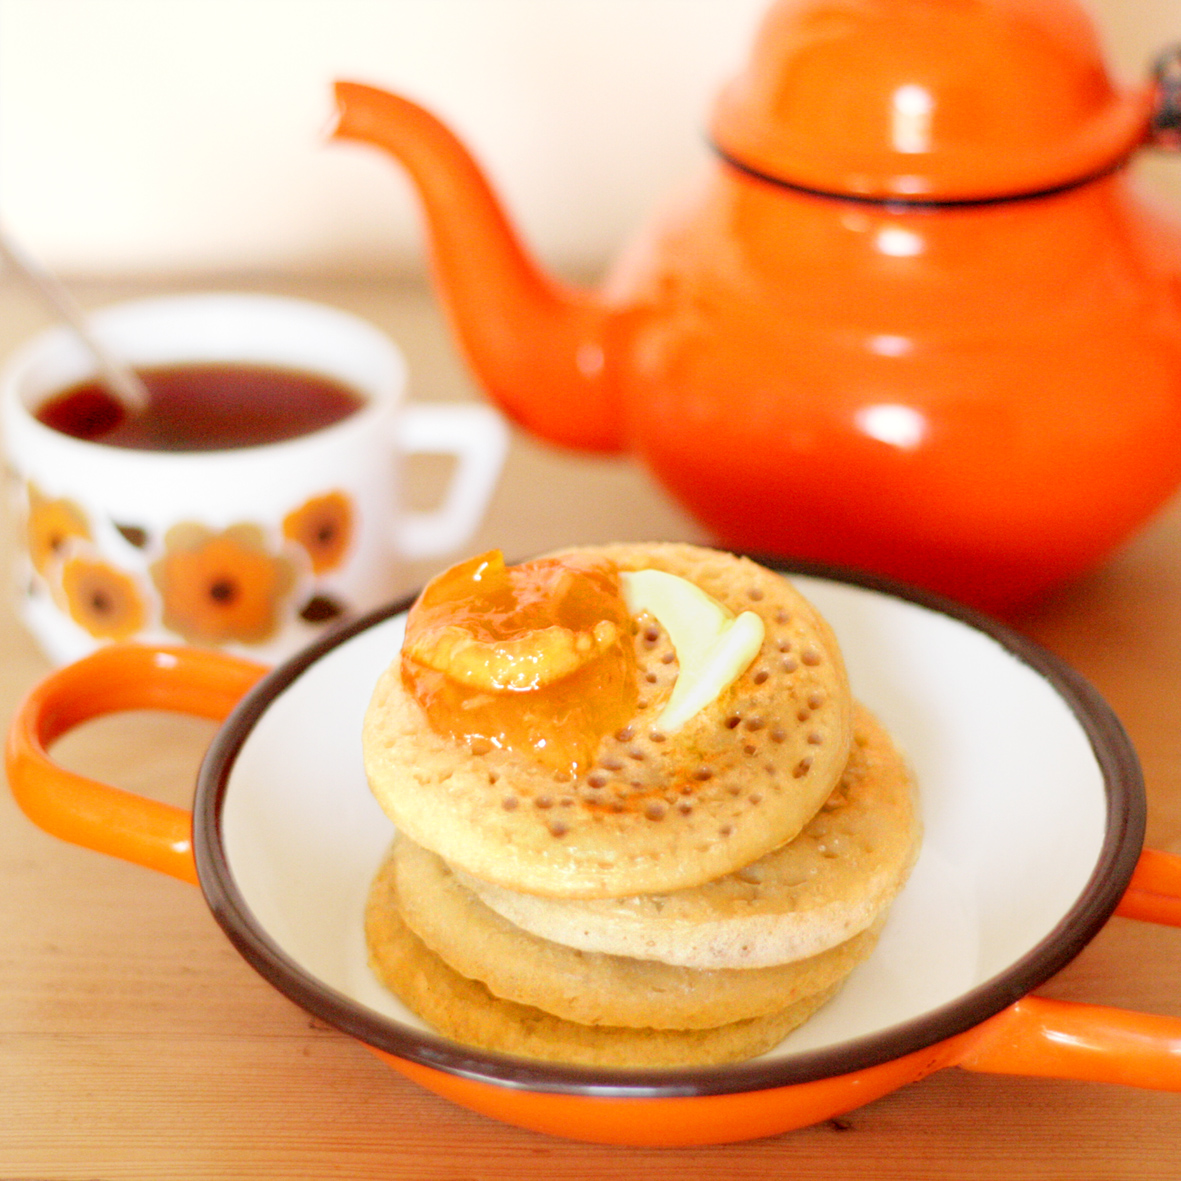 Cakes in the city: Brit trip #6 - Home made crumpets